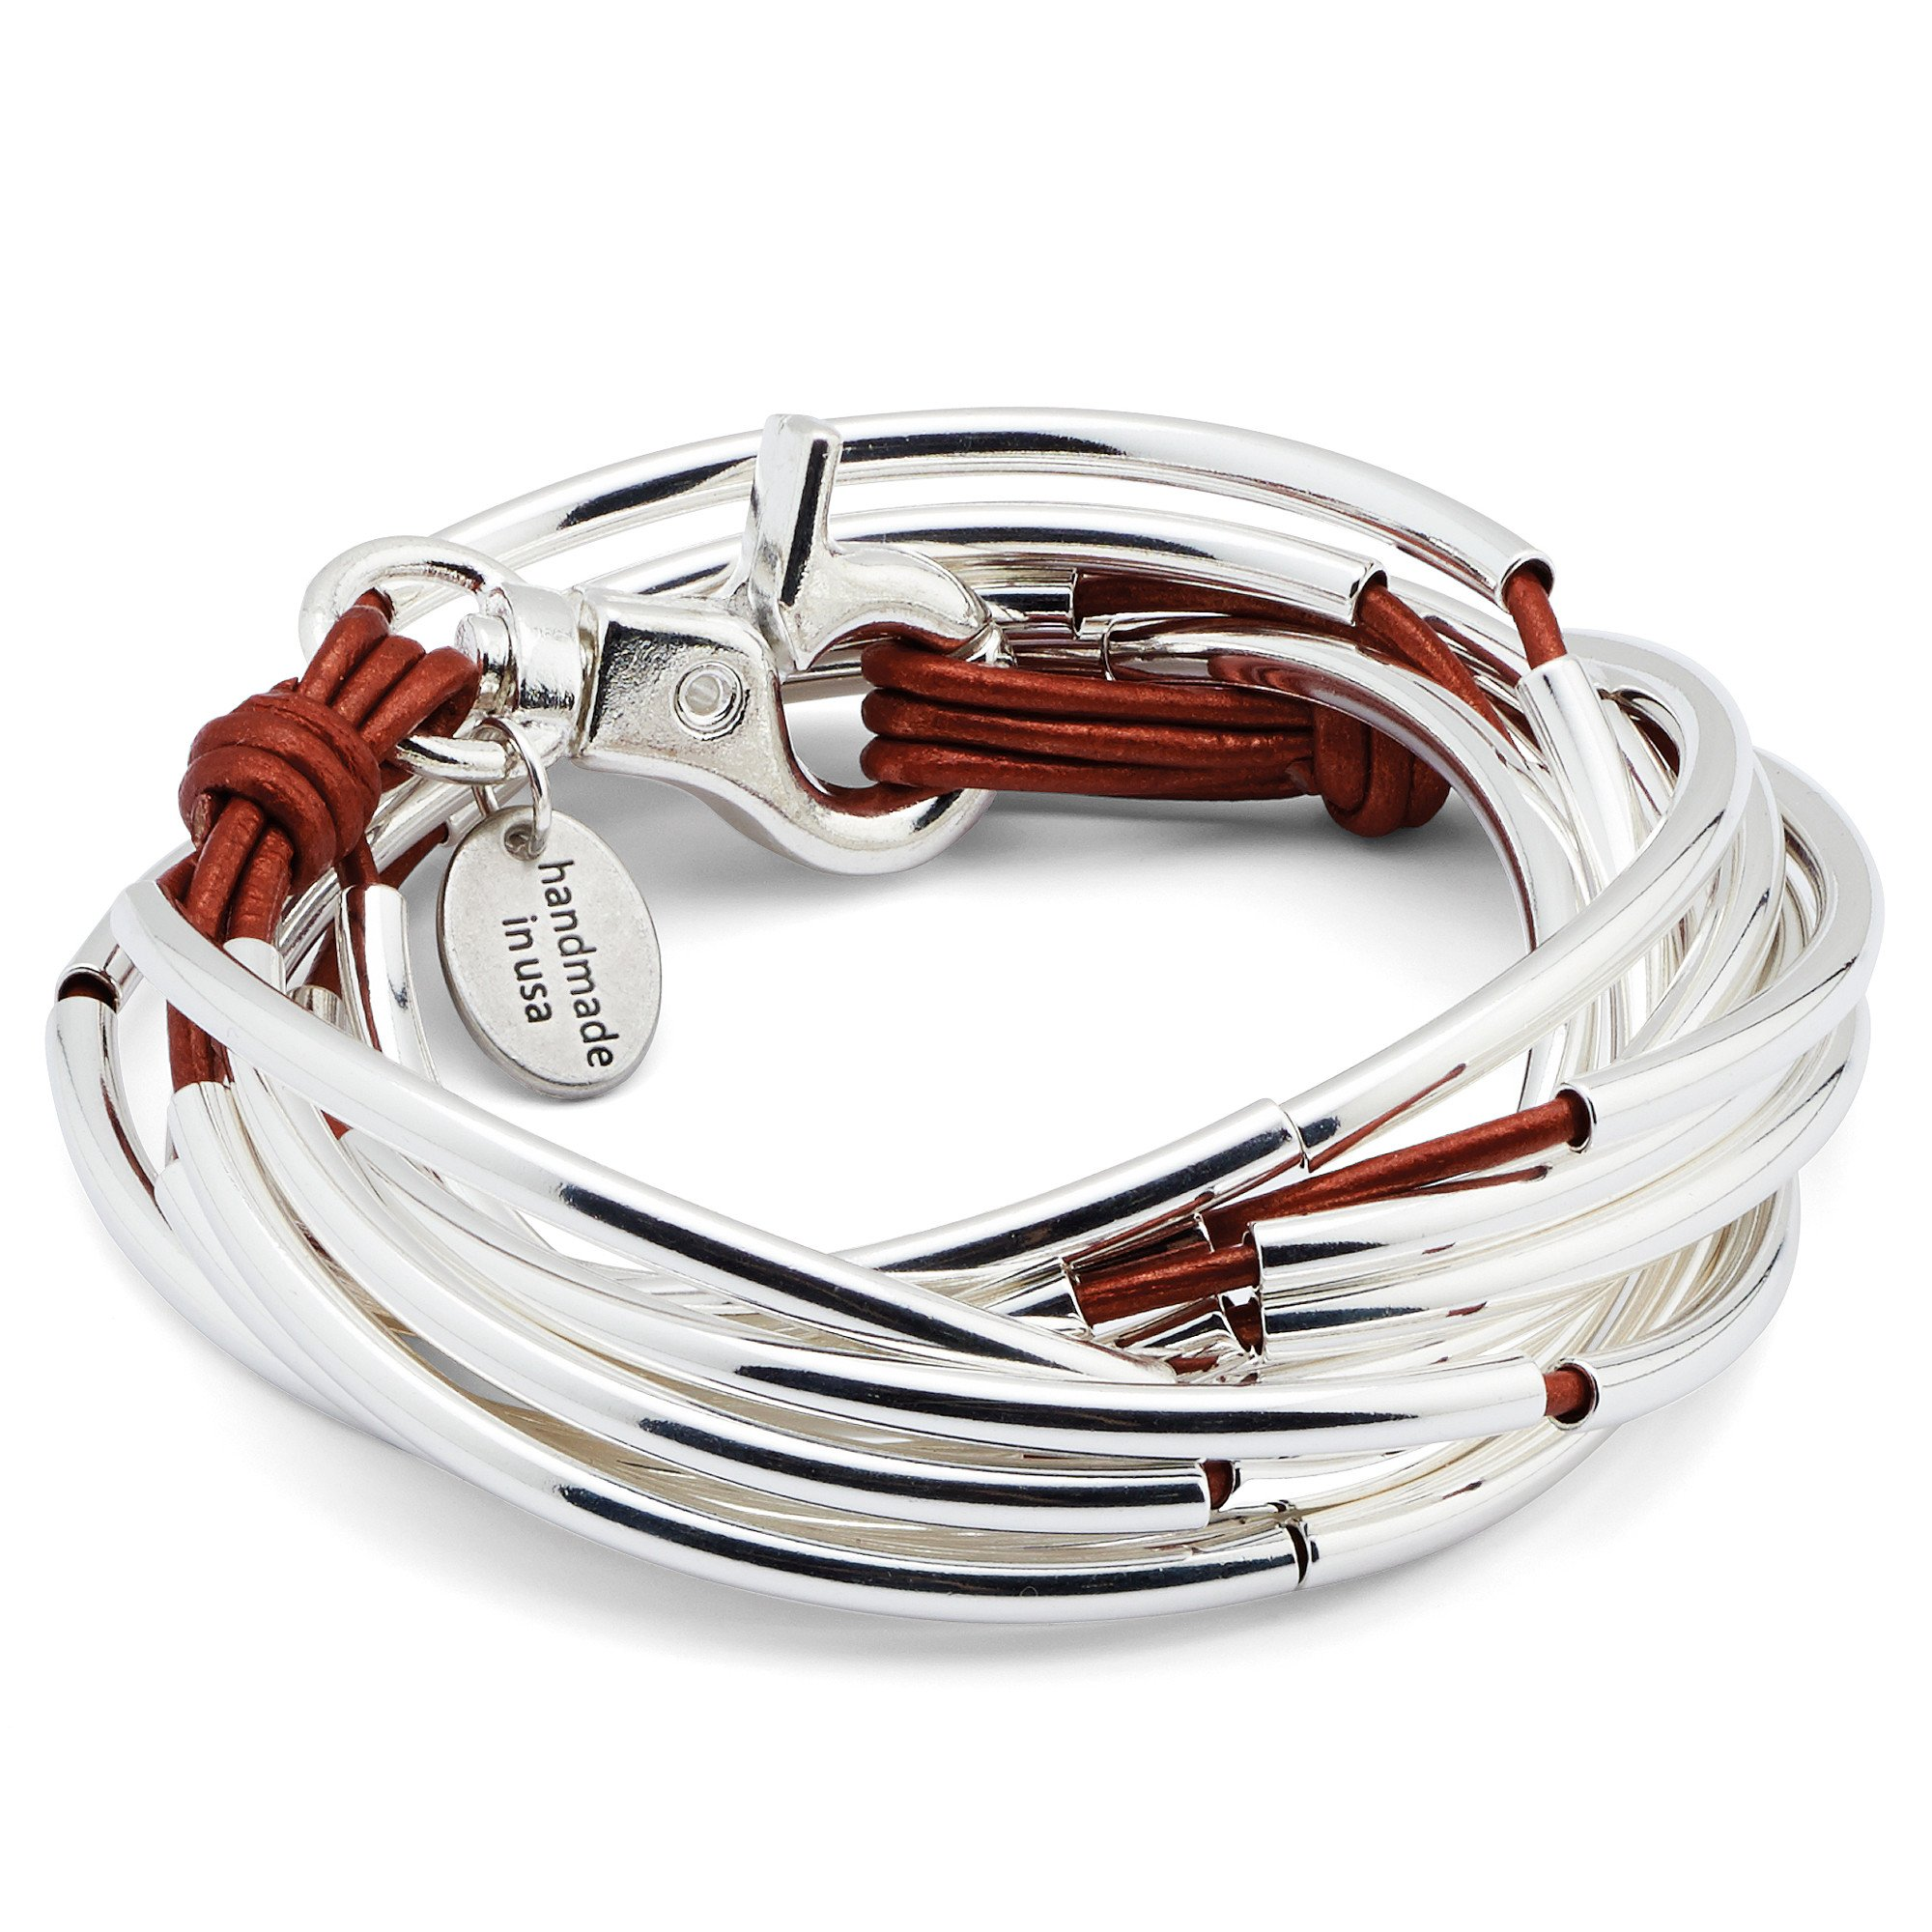 Mini Lexi 5 Strand XXLarge Bracelet With Metallic Moroccan Red Leather by Lizzy James